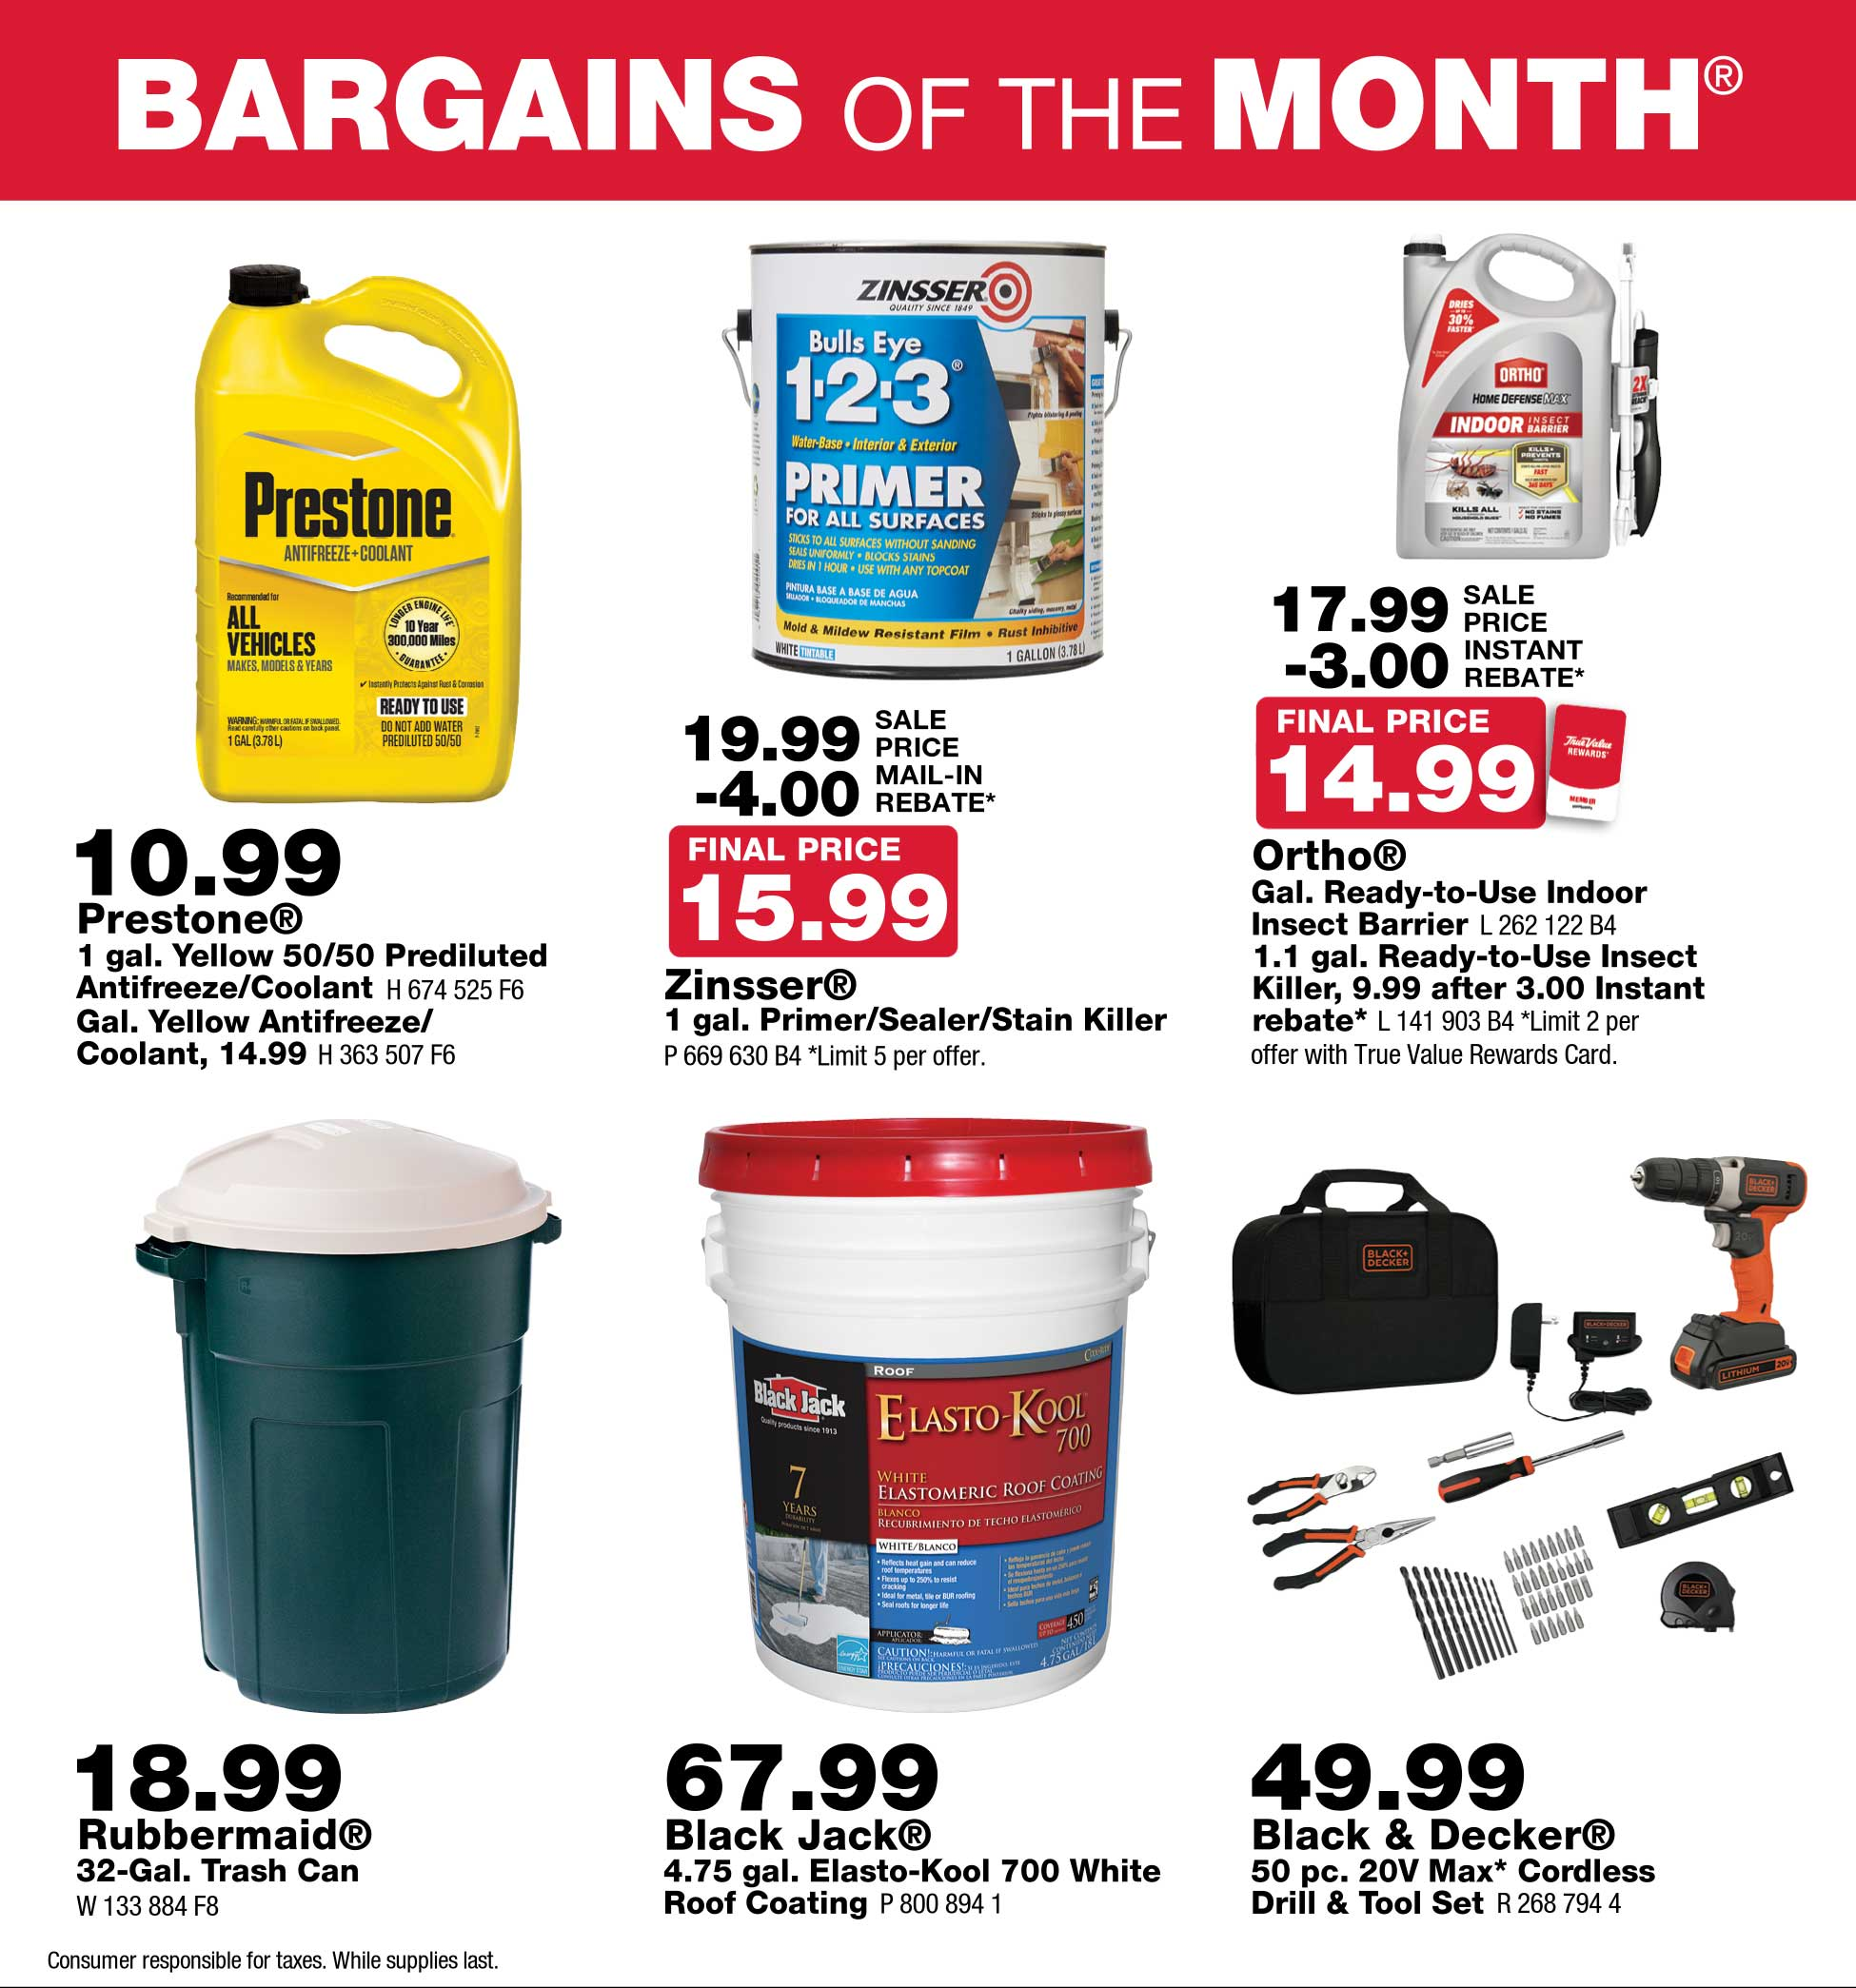 Junction True Value August Bargains of the Month